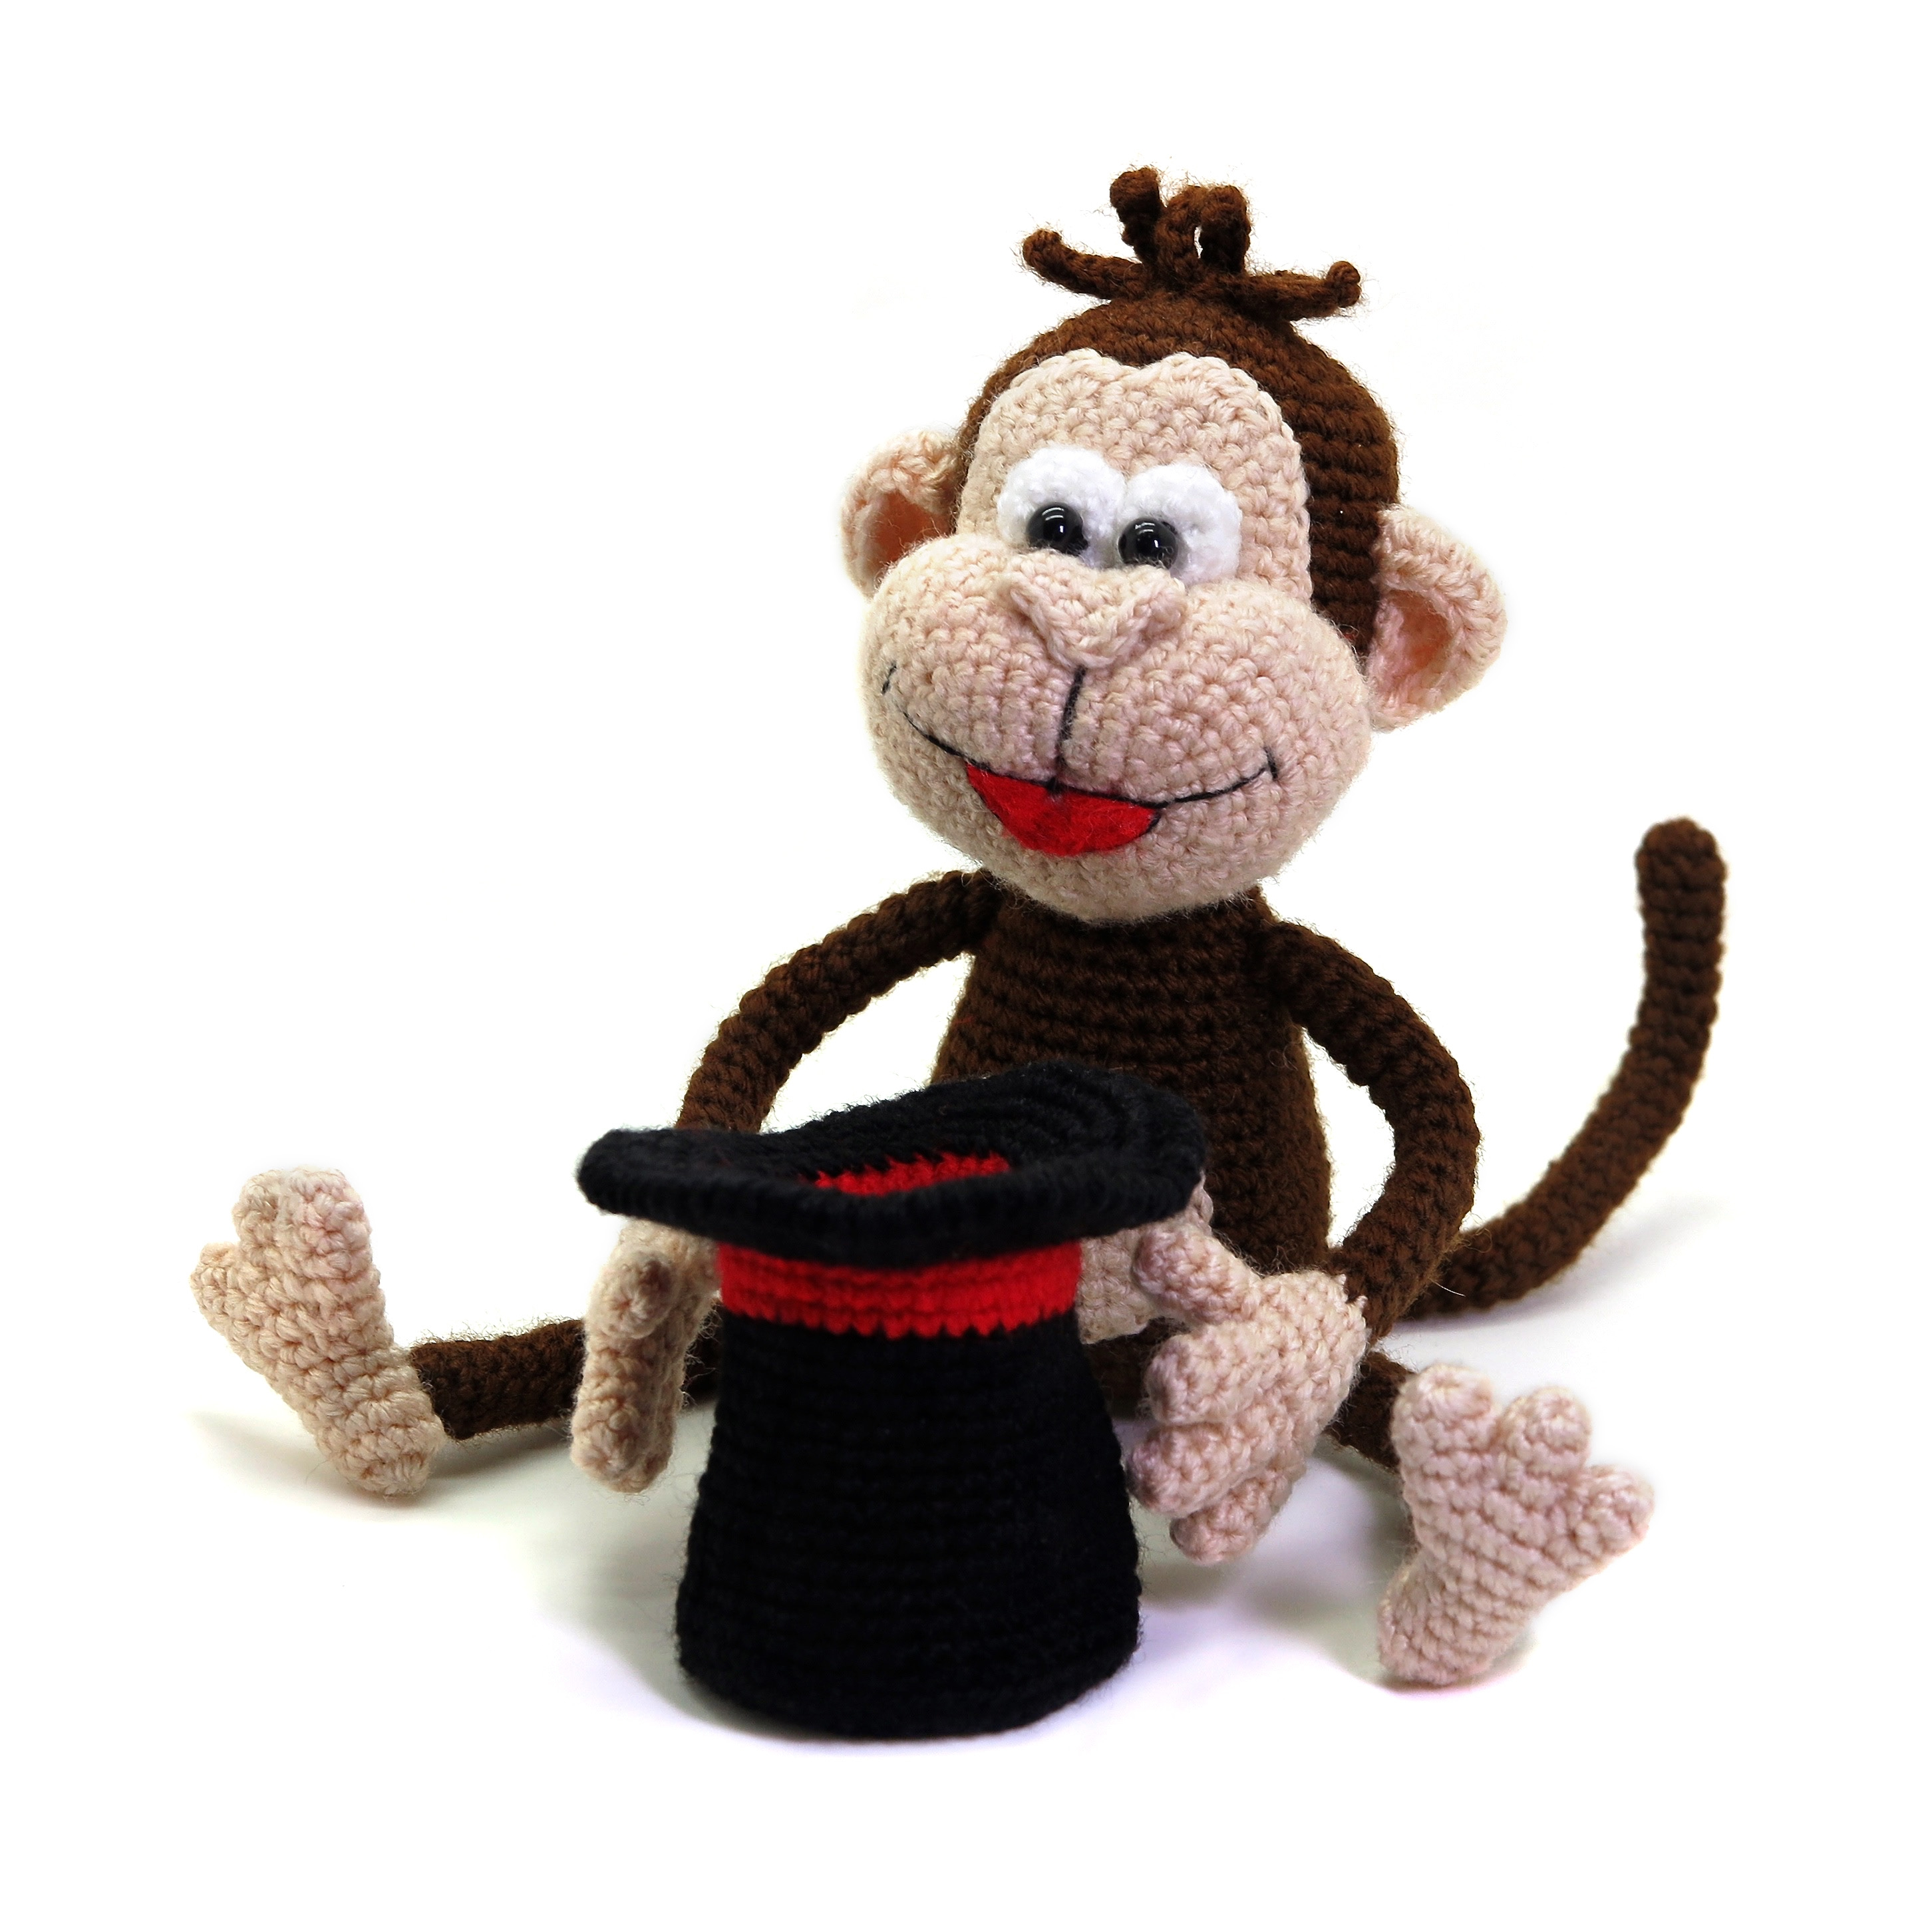 Monkey the Magician amigurumi circus